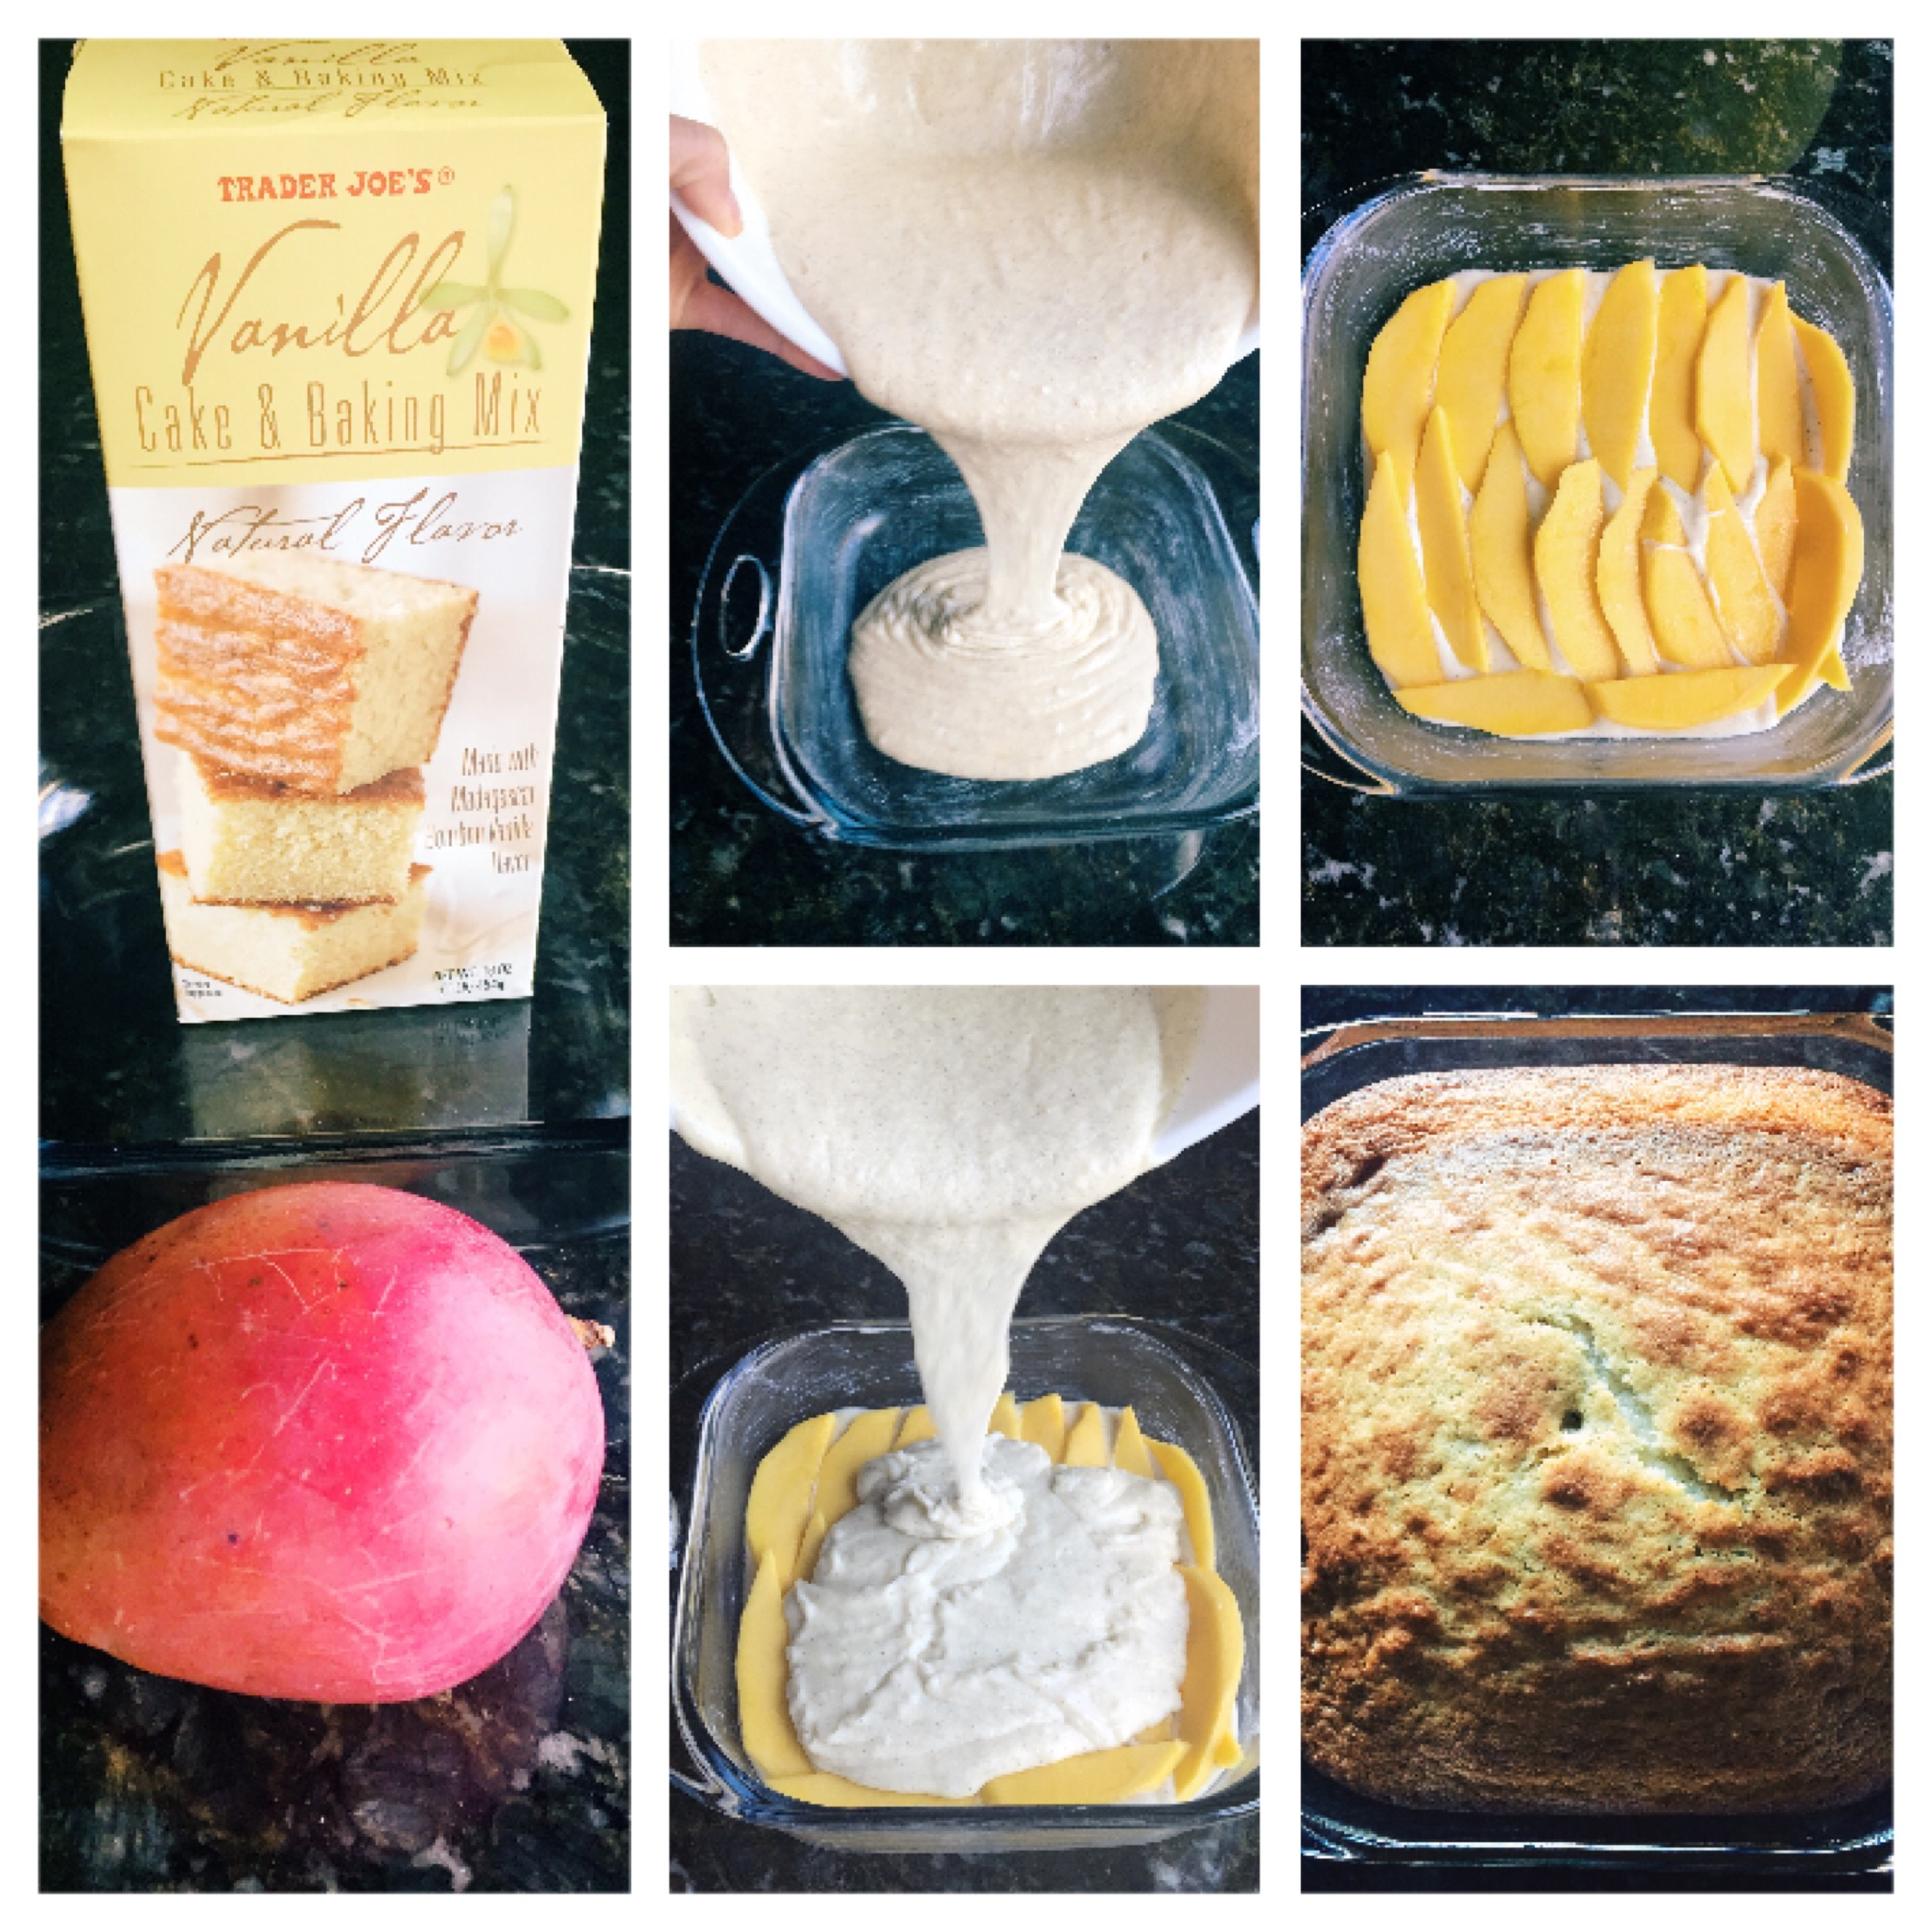 Prepare cake mix. Cut mango into thin slices. Pour half of the batter in to the baking pan. Add mangos on top then pour the rest of the batter on top. When it's done pair it with any topping you like. This cake is perfect for those who don't like frosting on their cake.Note: I got this recipe from my friend Christina who always make this cake for her daughter's birthday.